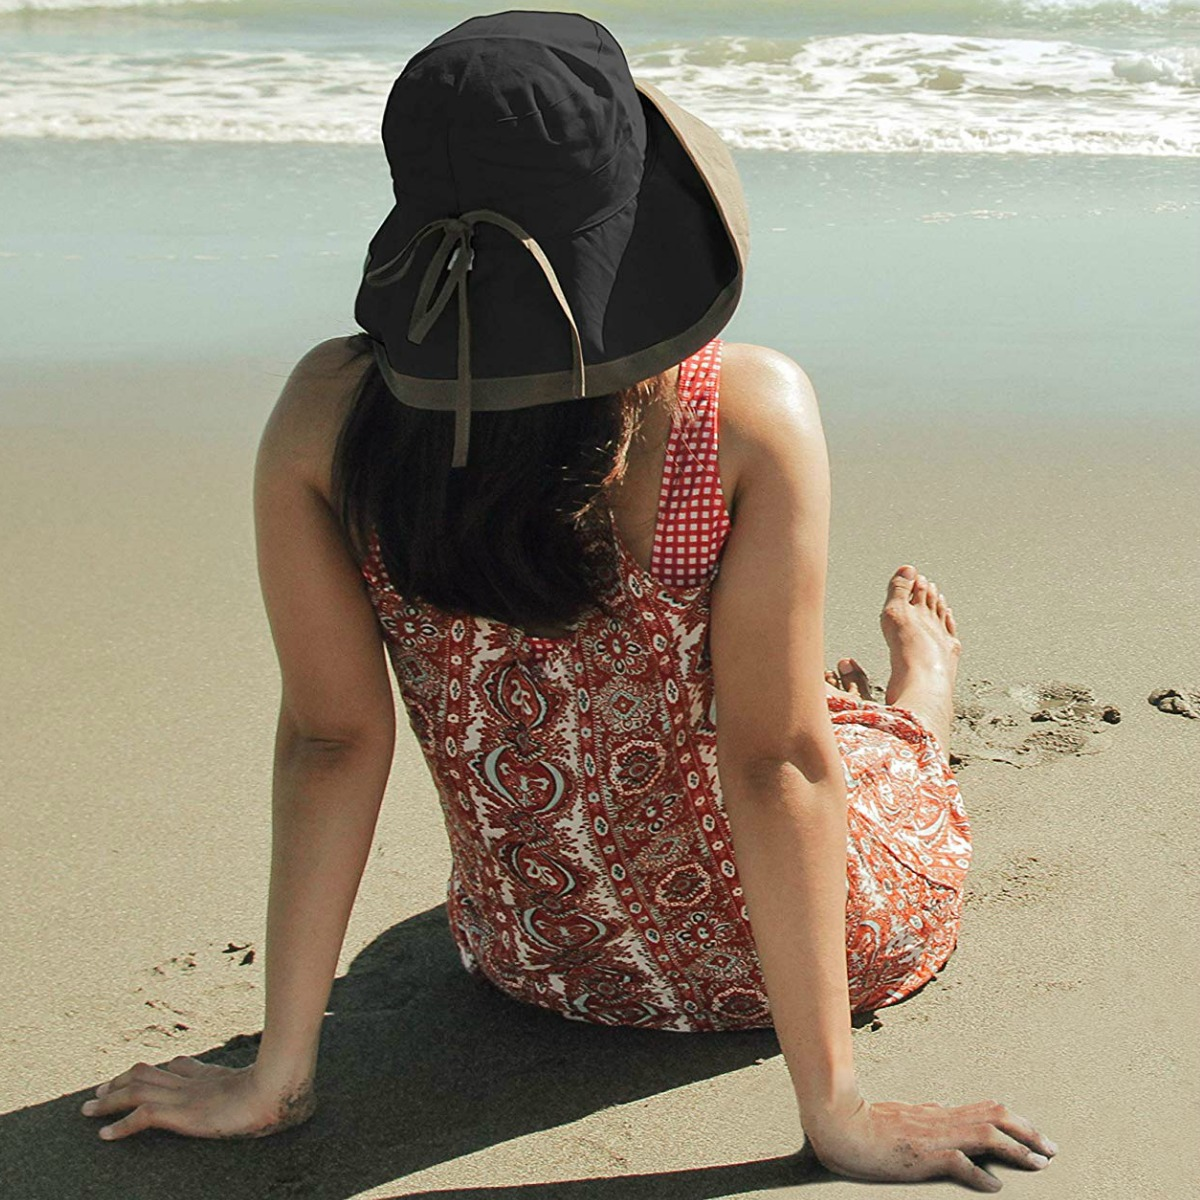 Woman wearing a black and beige sun hat in the sand at the beach